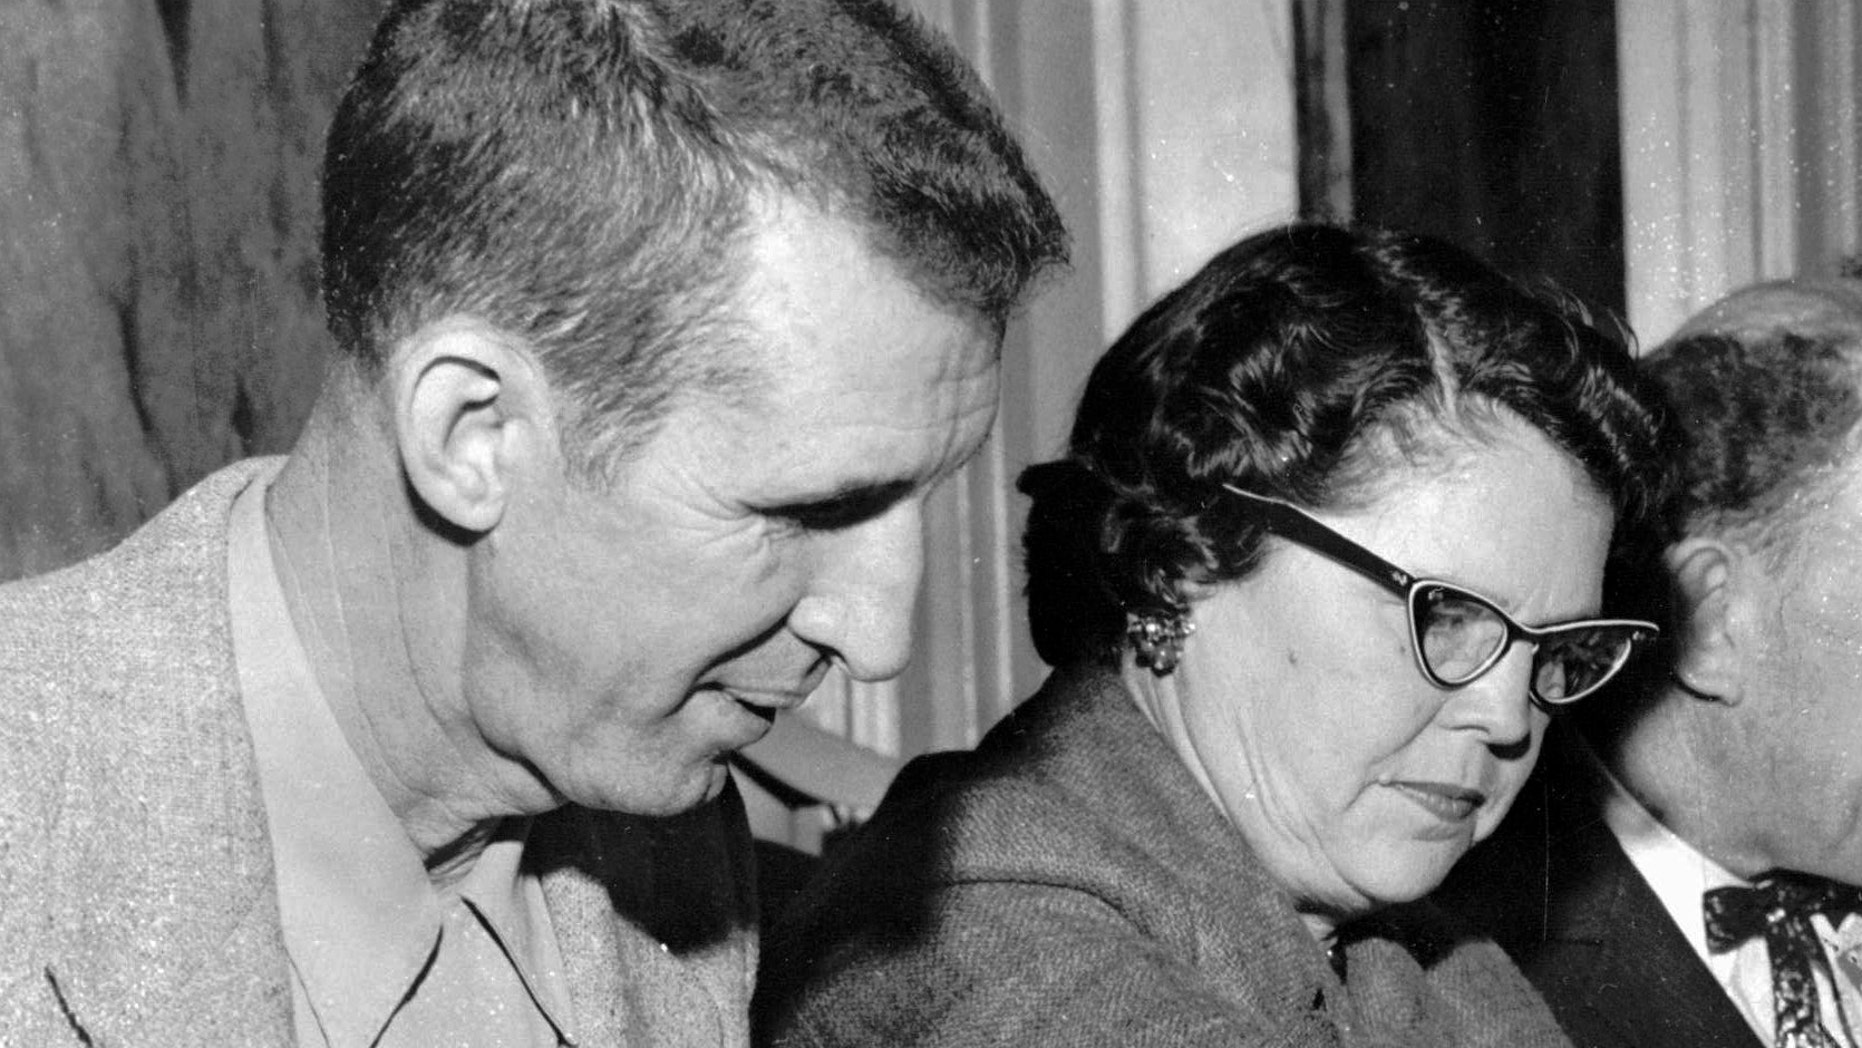 """FILE - This 1972 photo shows David """"Stringbean"""" Akeman and his wife, Estelle. The killer of the Grand Ole Opry and Hee Haw comic Akeman and his wife Estelle was granted parole Wednesday, Oct. 15, 2014, after 40 years in prison. John A. Brown, 64, was originally sentenced to 198 years, and the board has denied several previous parole requests.  (AP Photo/file)"""